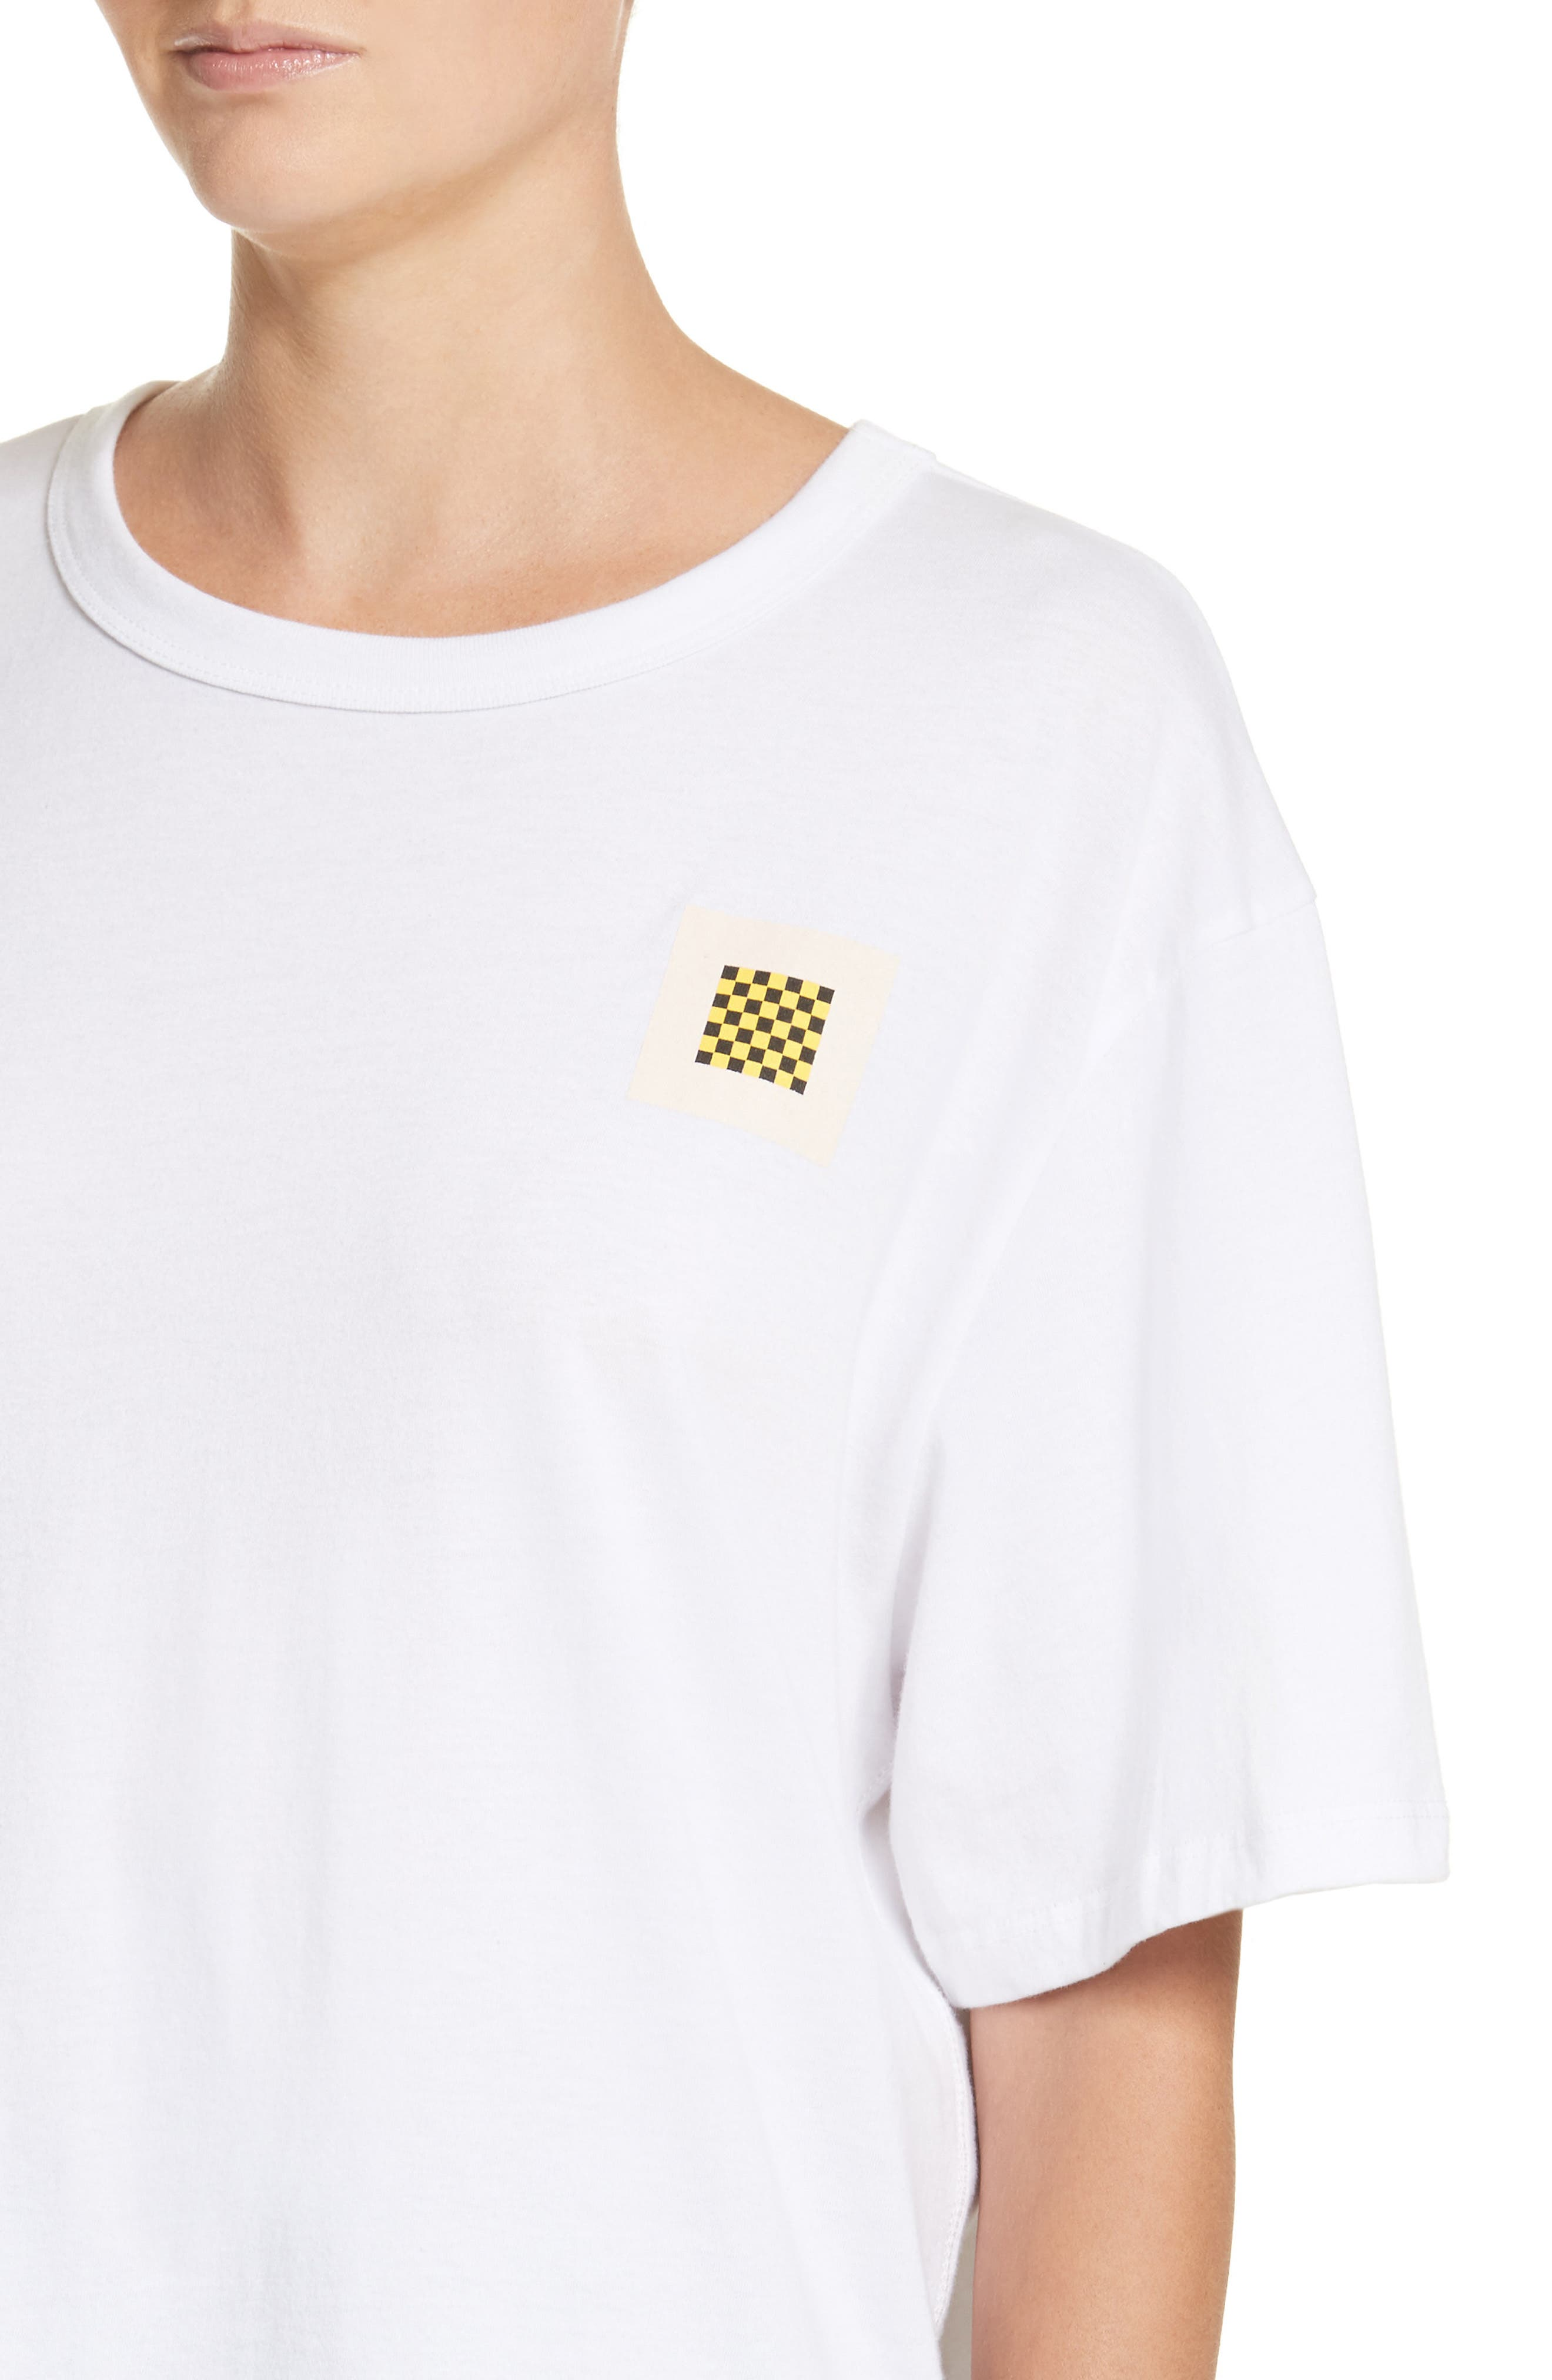 PSWL Graphic Jersey Tee,                             Alternate thumbnail 5, color,                             White